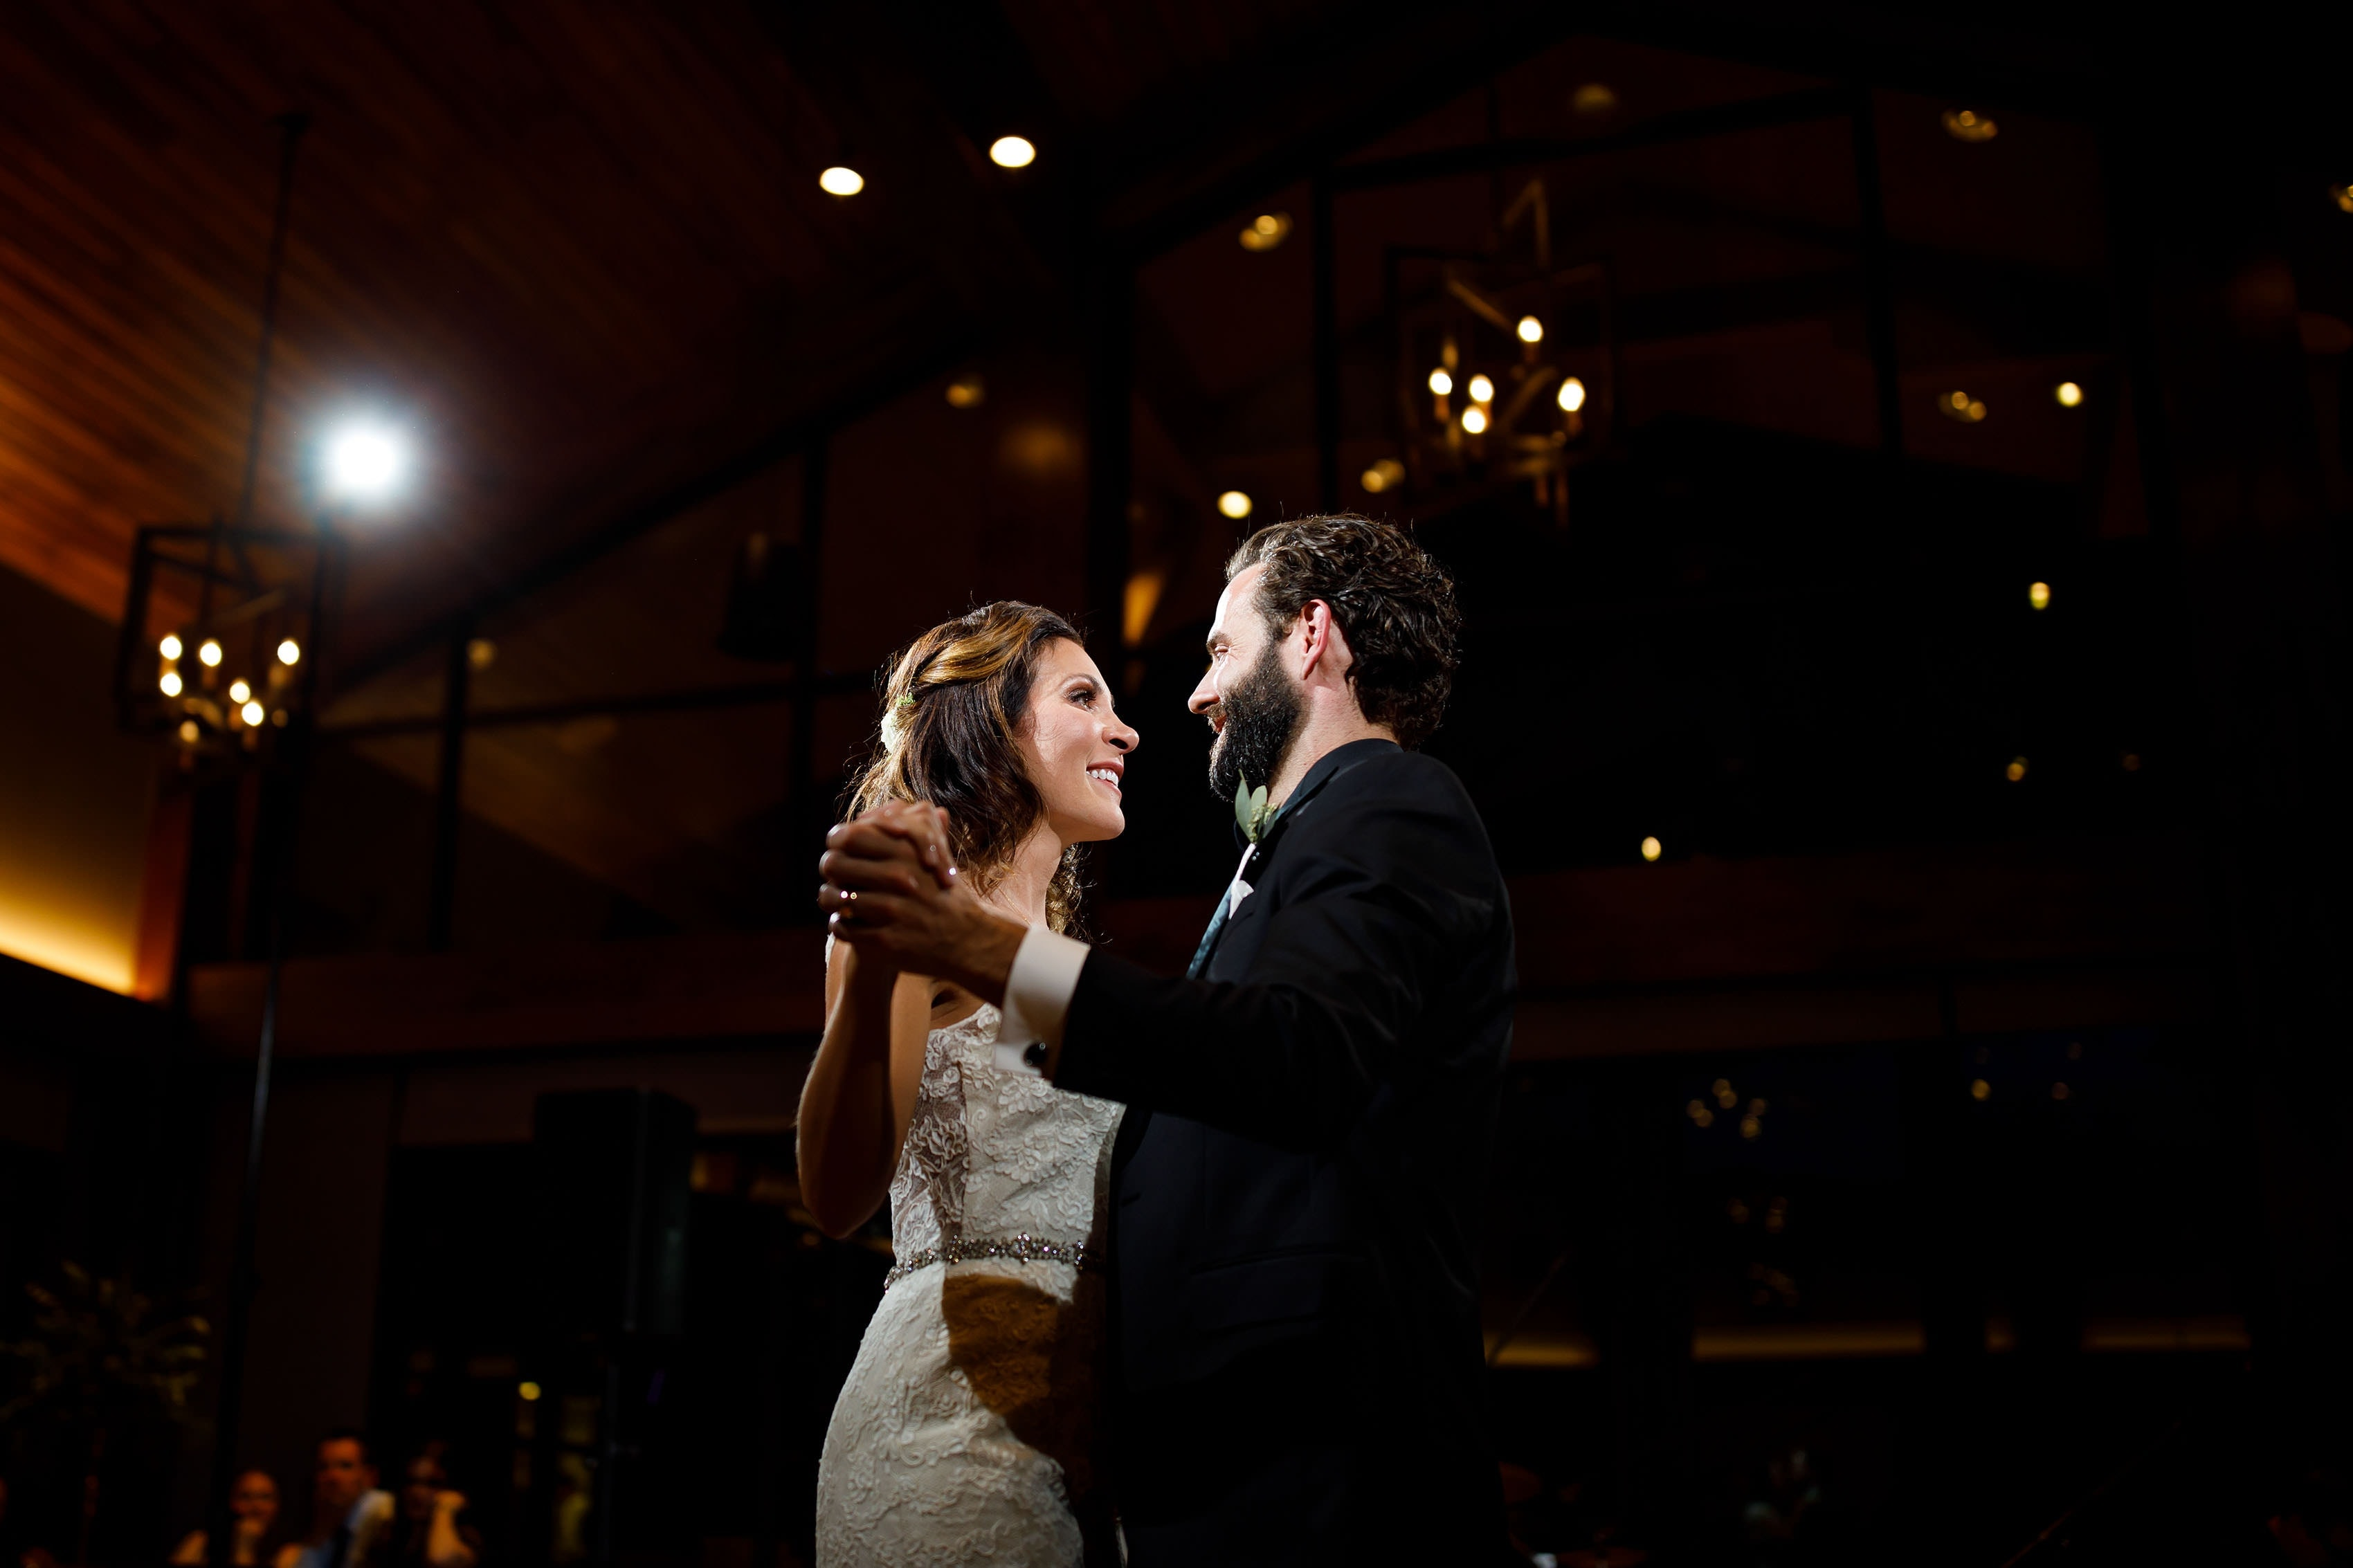 Christine and Stephen dance together at Vail GOlf Club